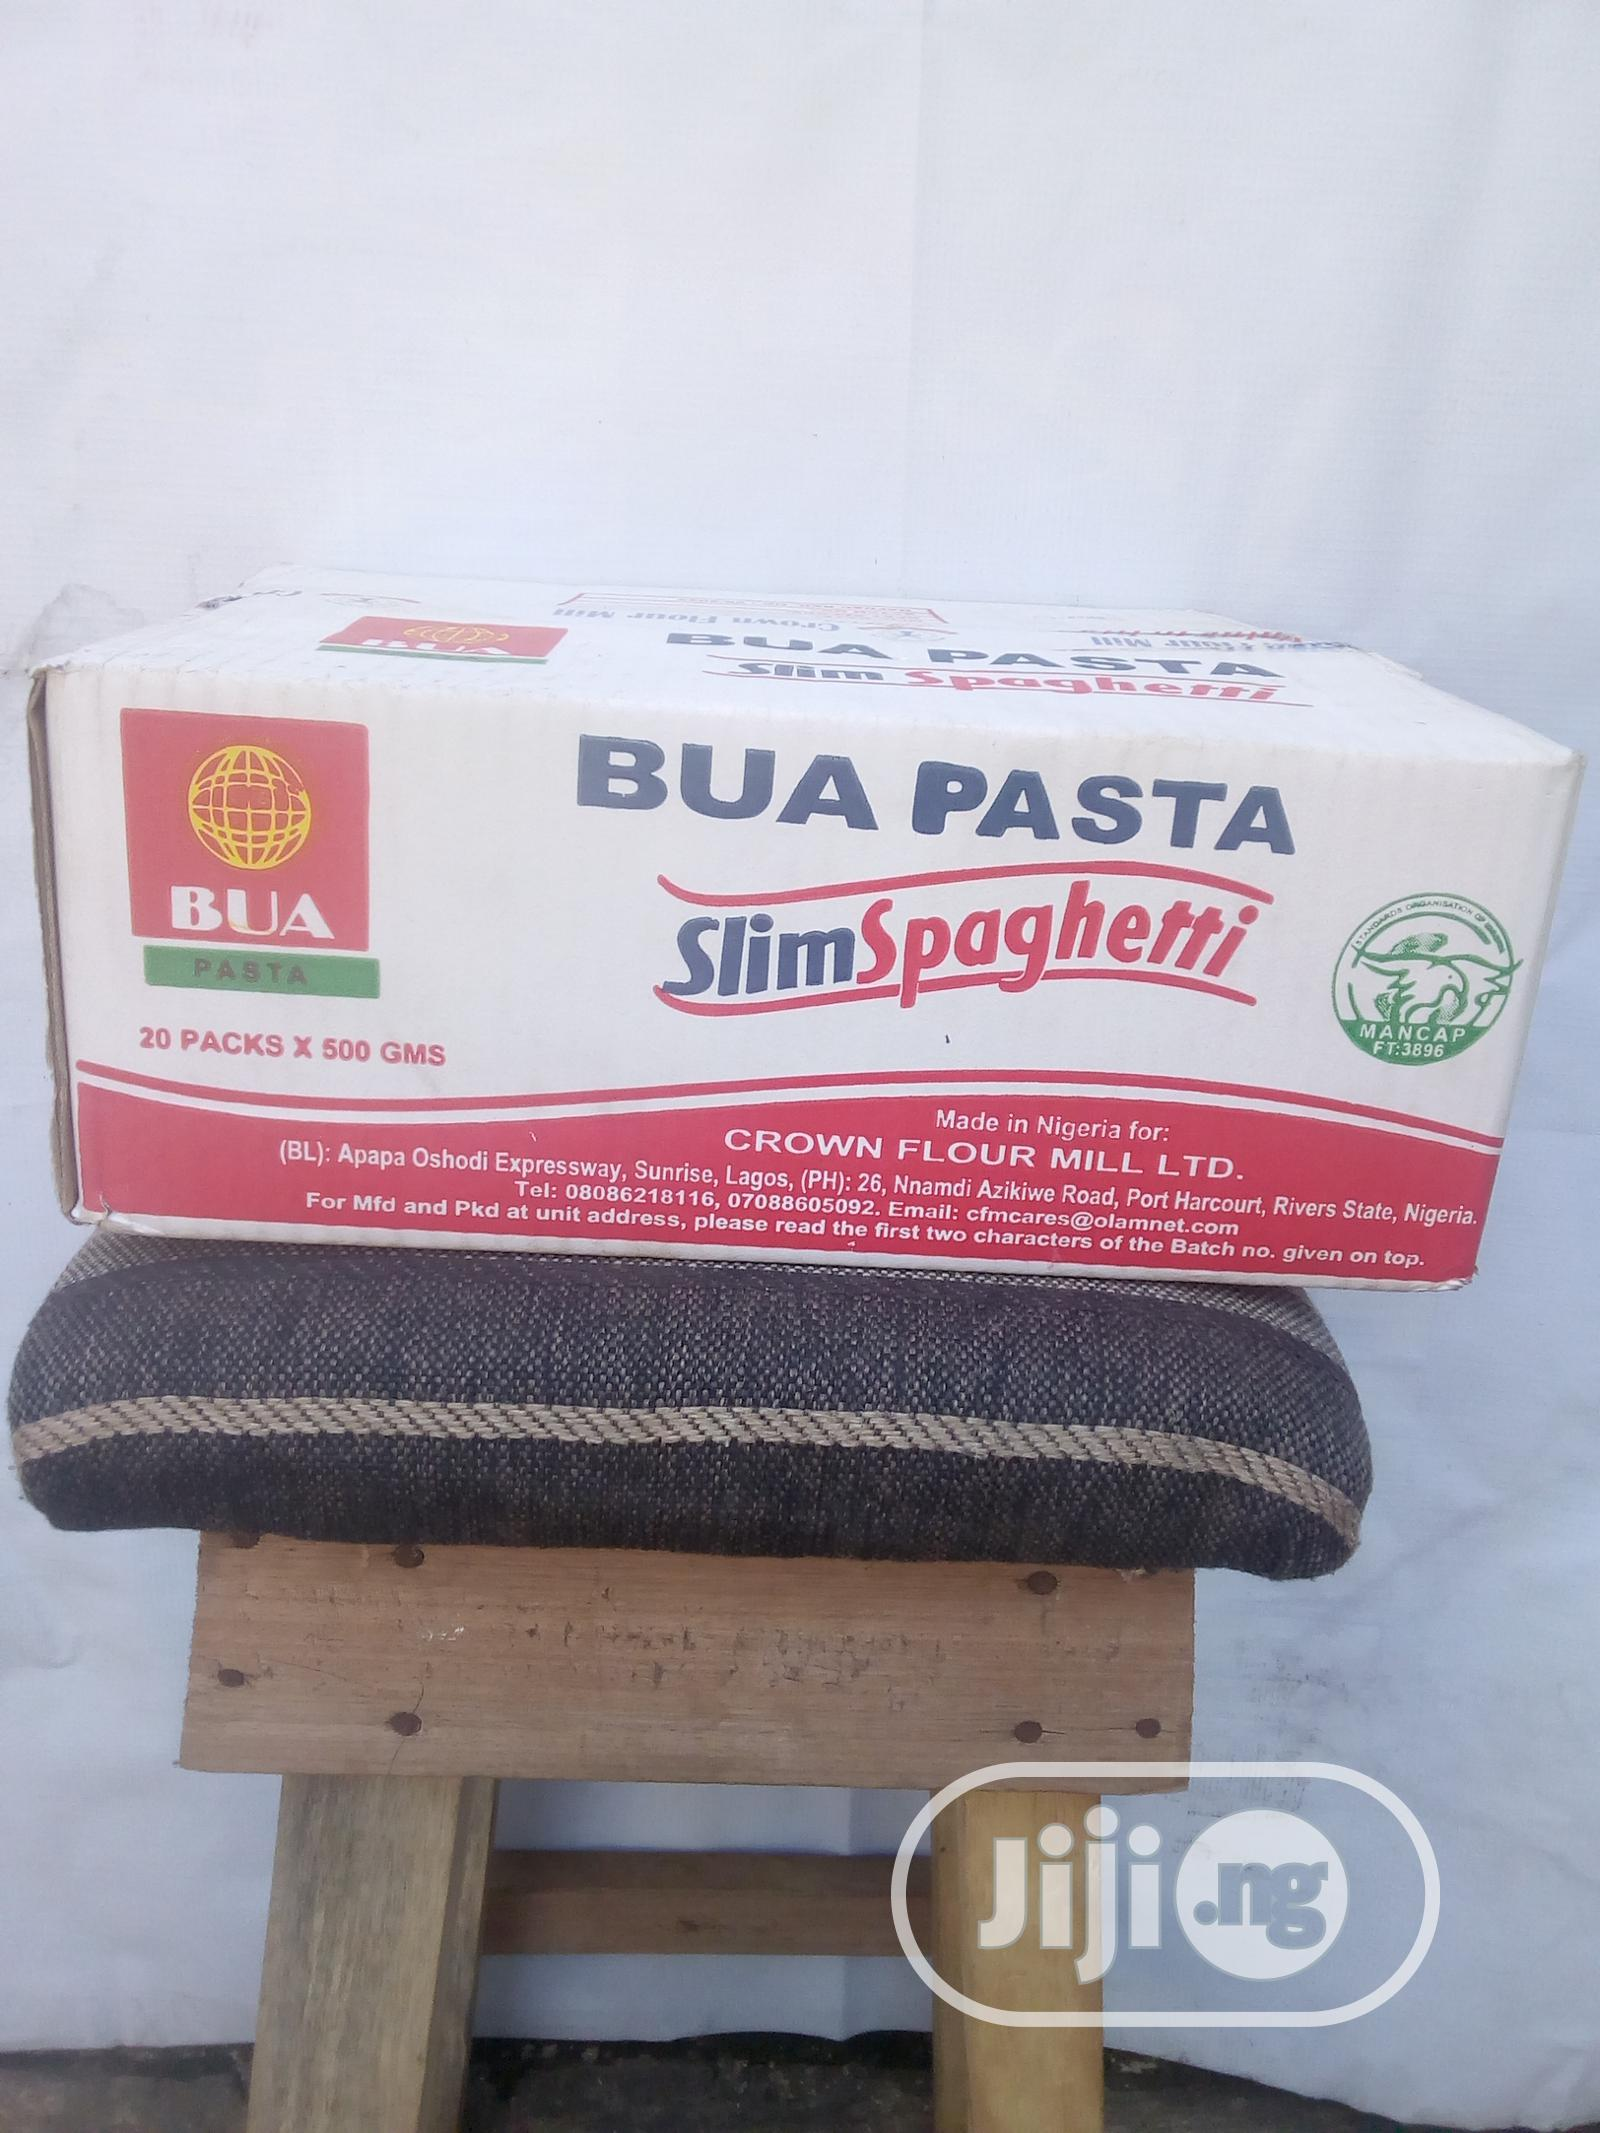 BUA Pasta 10KG Slim Spaghetti Carton | Meals & Drinks for sale in Surulere, Lagos State, Nigeria